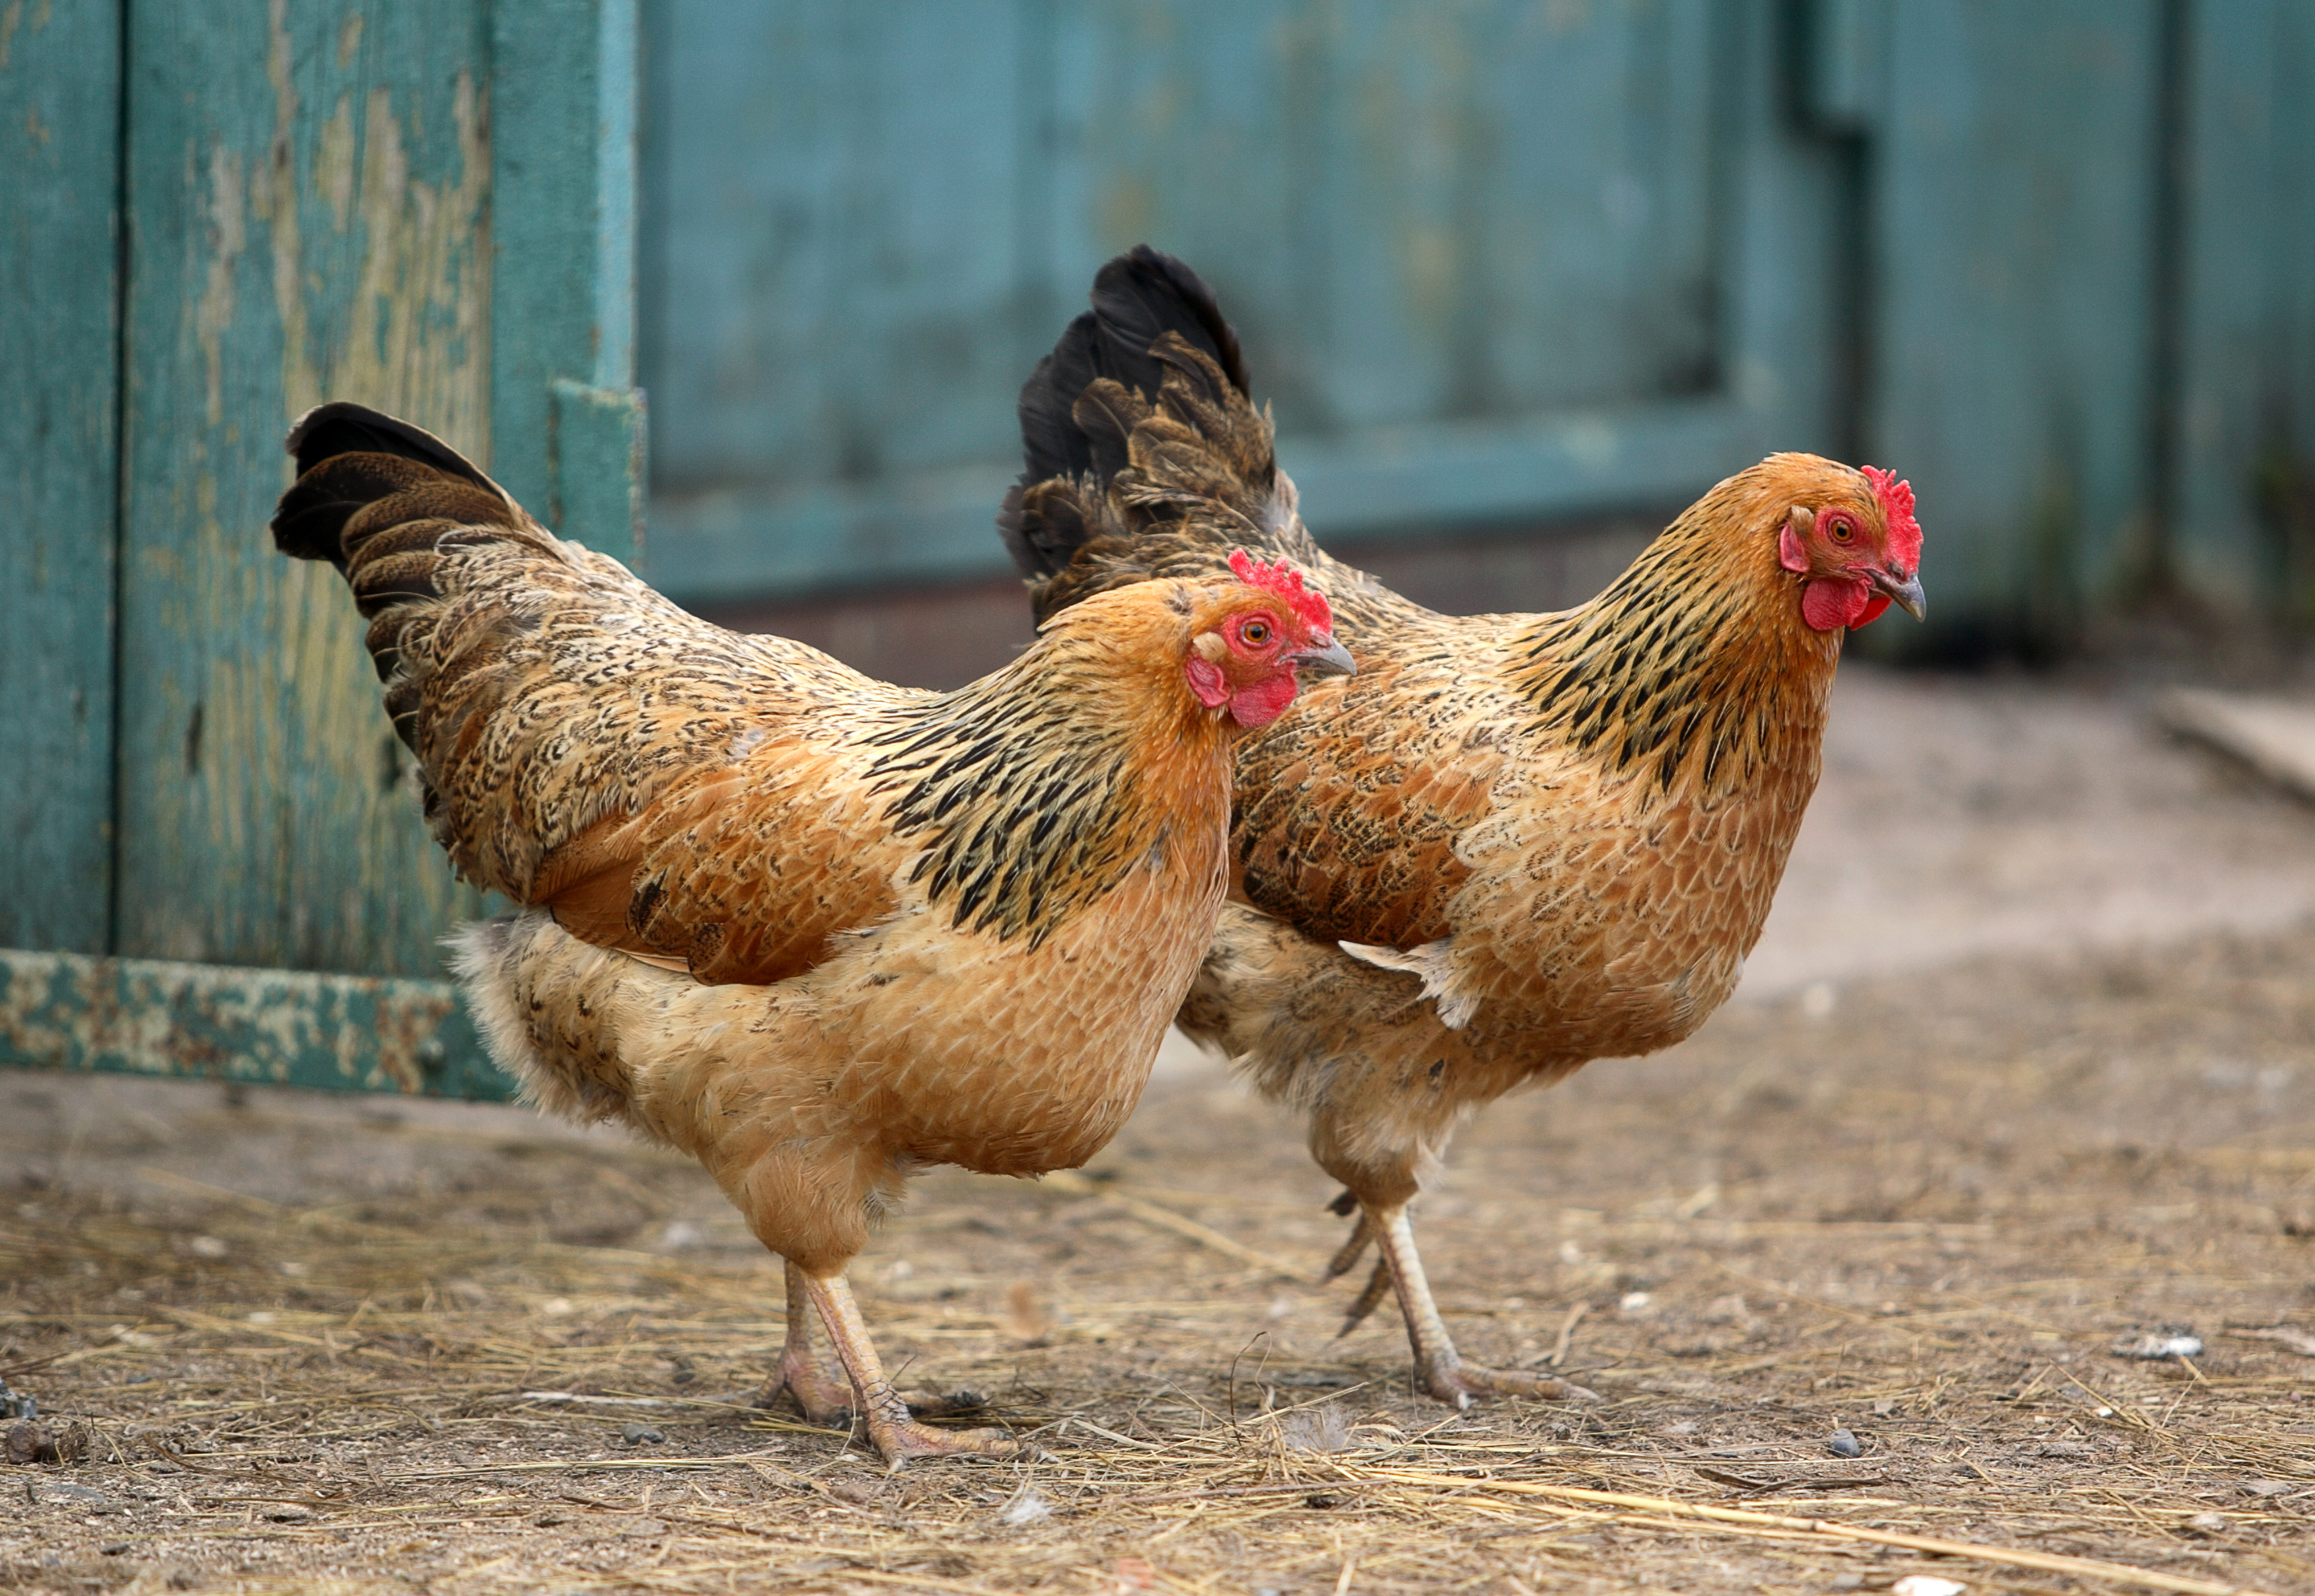 Two running hens